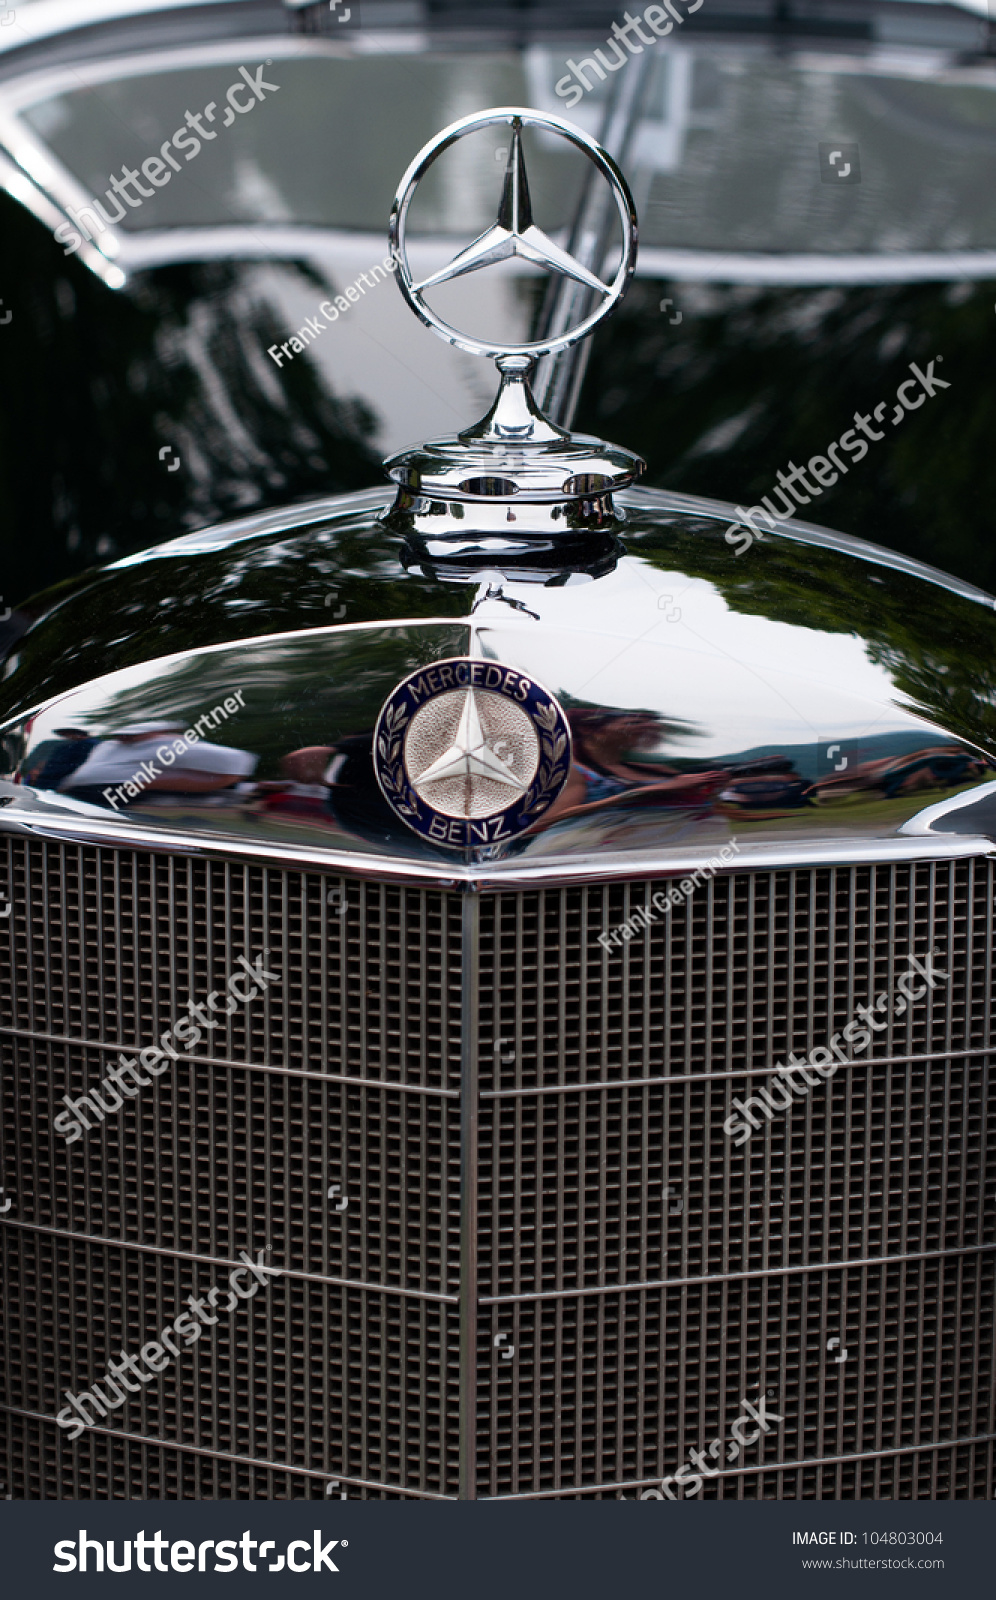 Cernobbio lake como may 27 mercedesbenz stock photo for Mercedes benz sign in